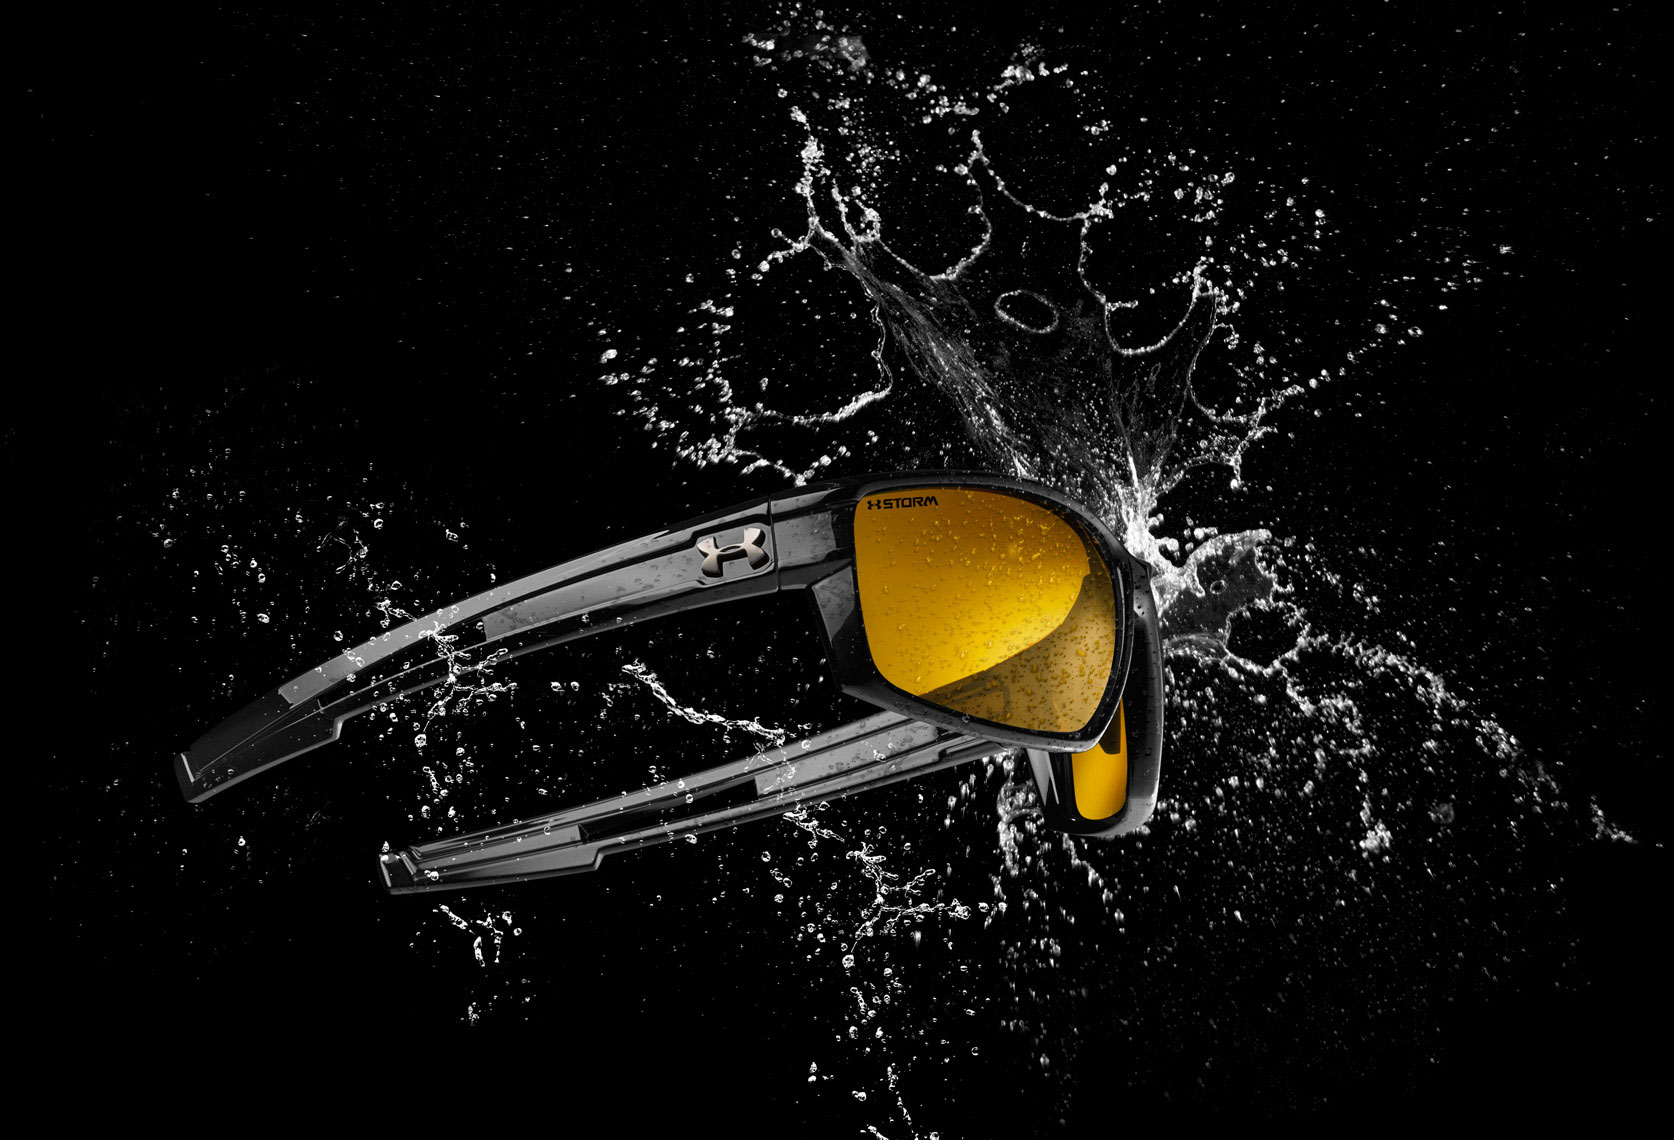 Accessories photography - Under Armour eyewear water splash